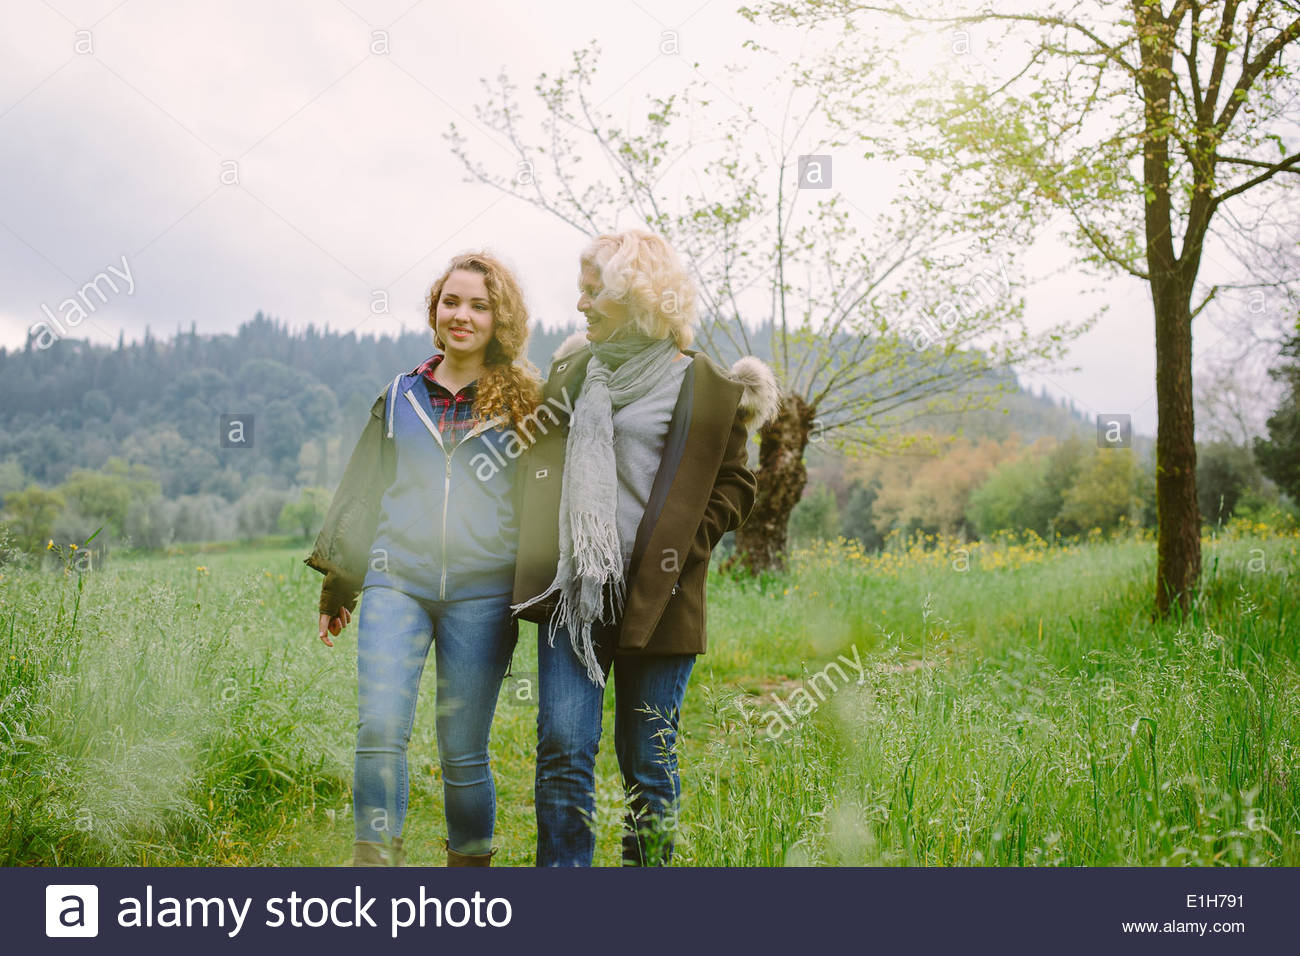 Mature woman and teenage daughter strolling in field - Stock Image